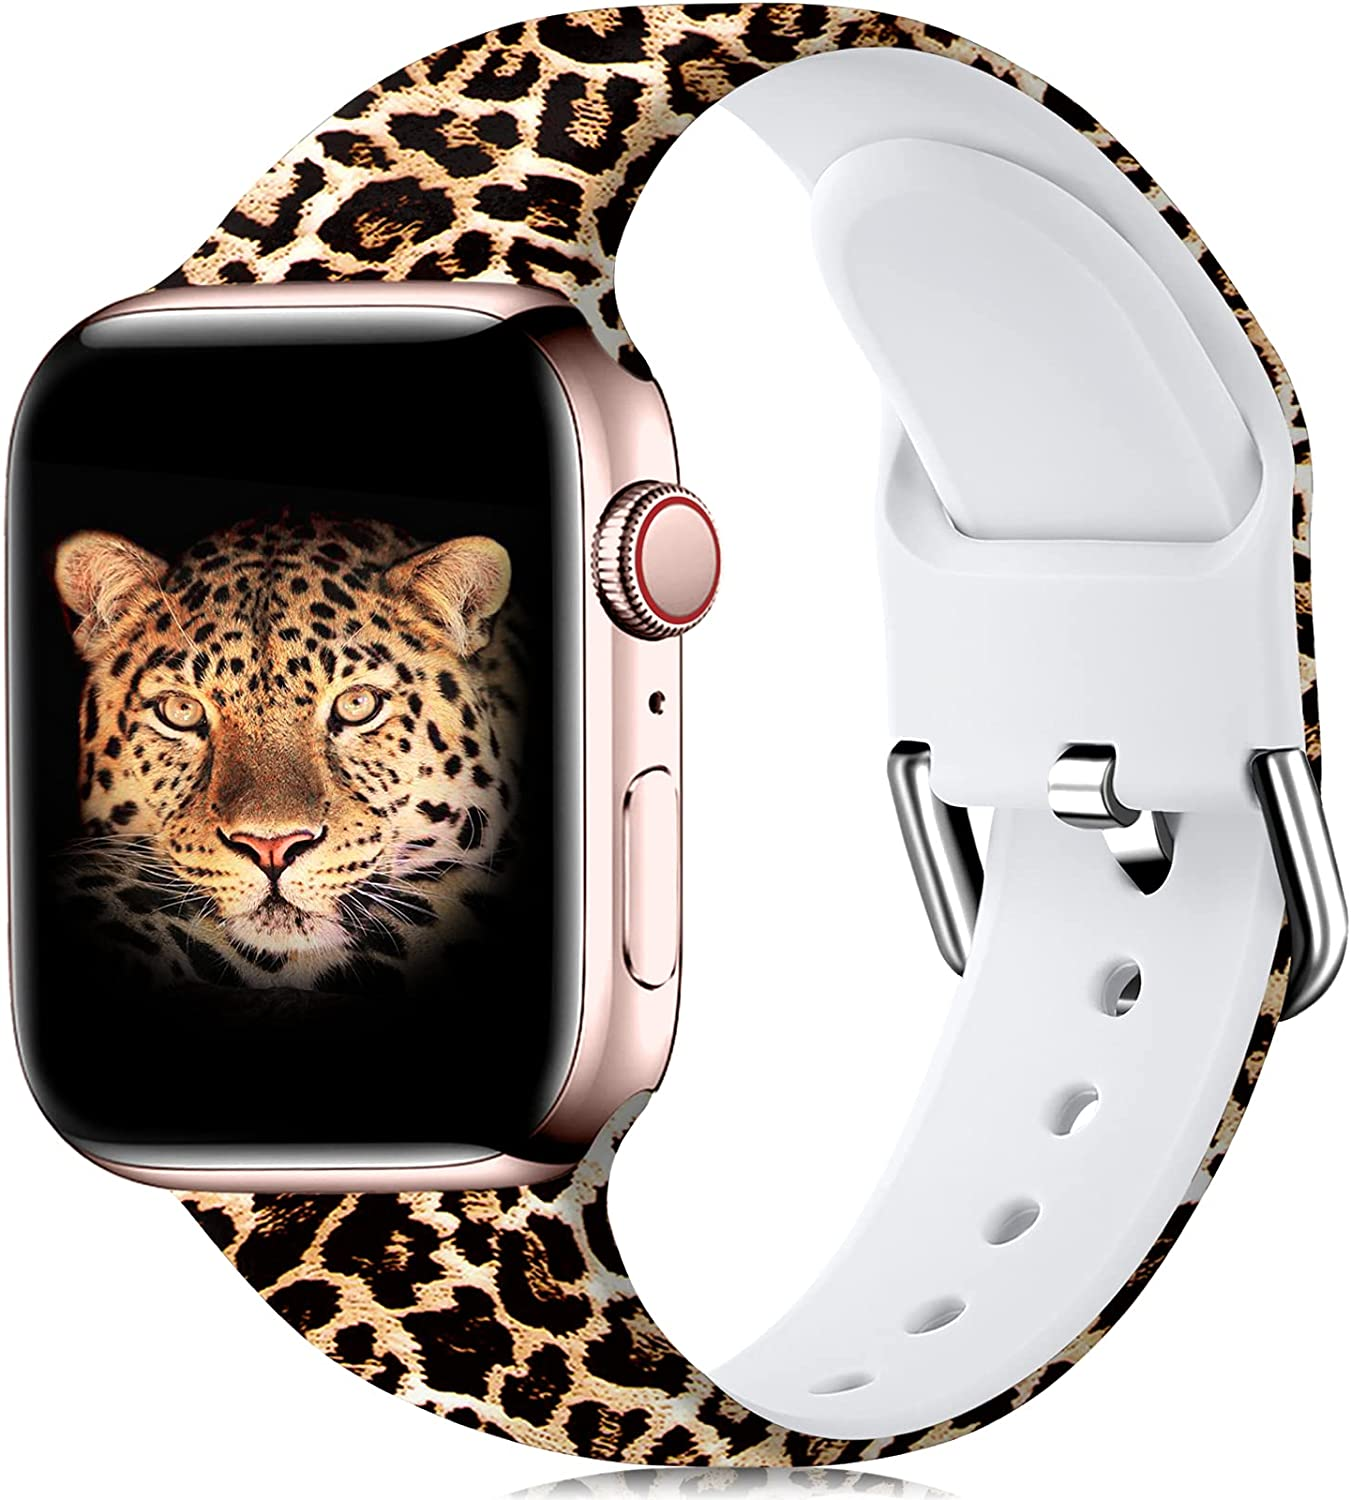 Wepro Compatible with 38mm Apple Watch Band 40mm Women iWatch SE & Series 6, Series 3, Series 5 4 2 1, Fadeless Floral Pattern Printed Silicone Wrist Bands Replacement, Leopard, S/M